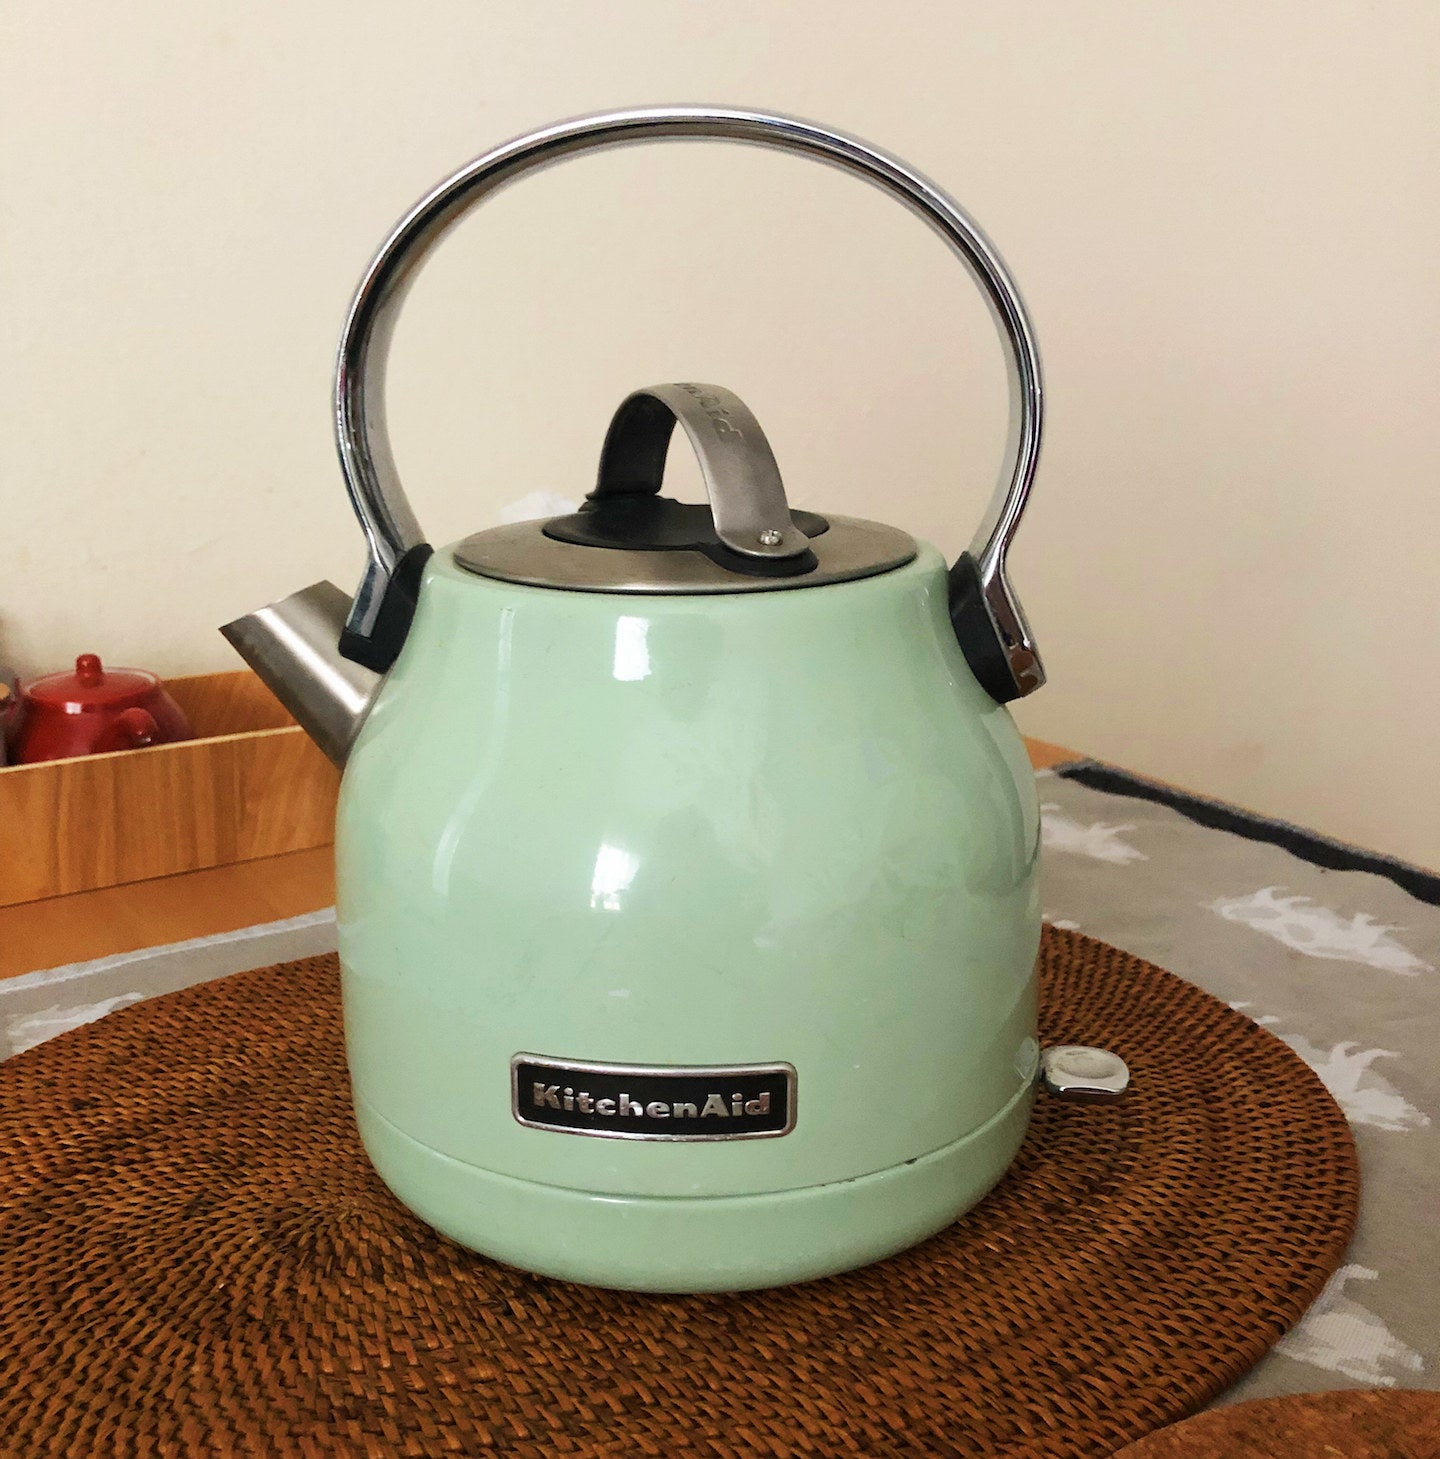 Review image of the kettle taken by me